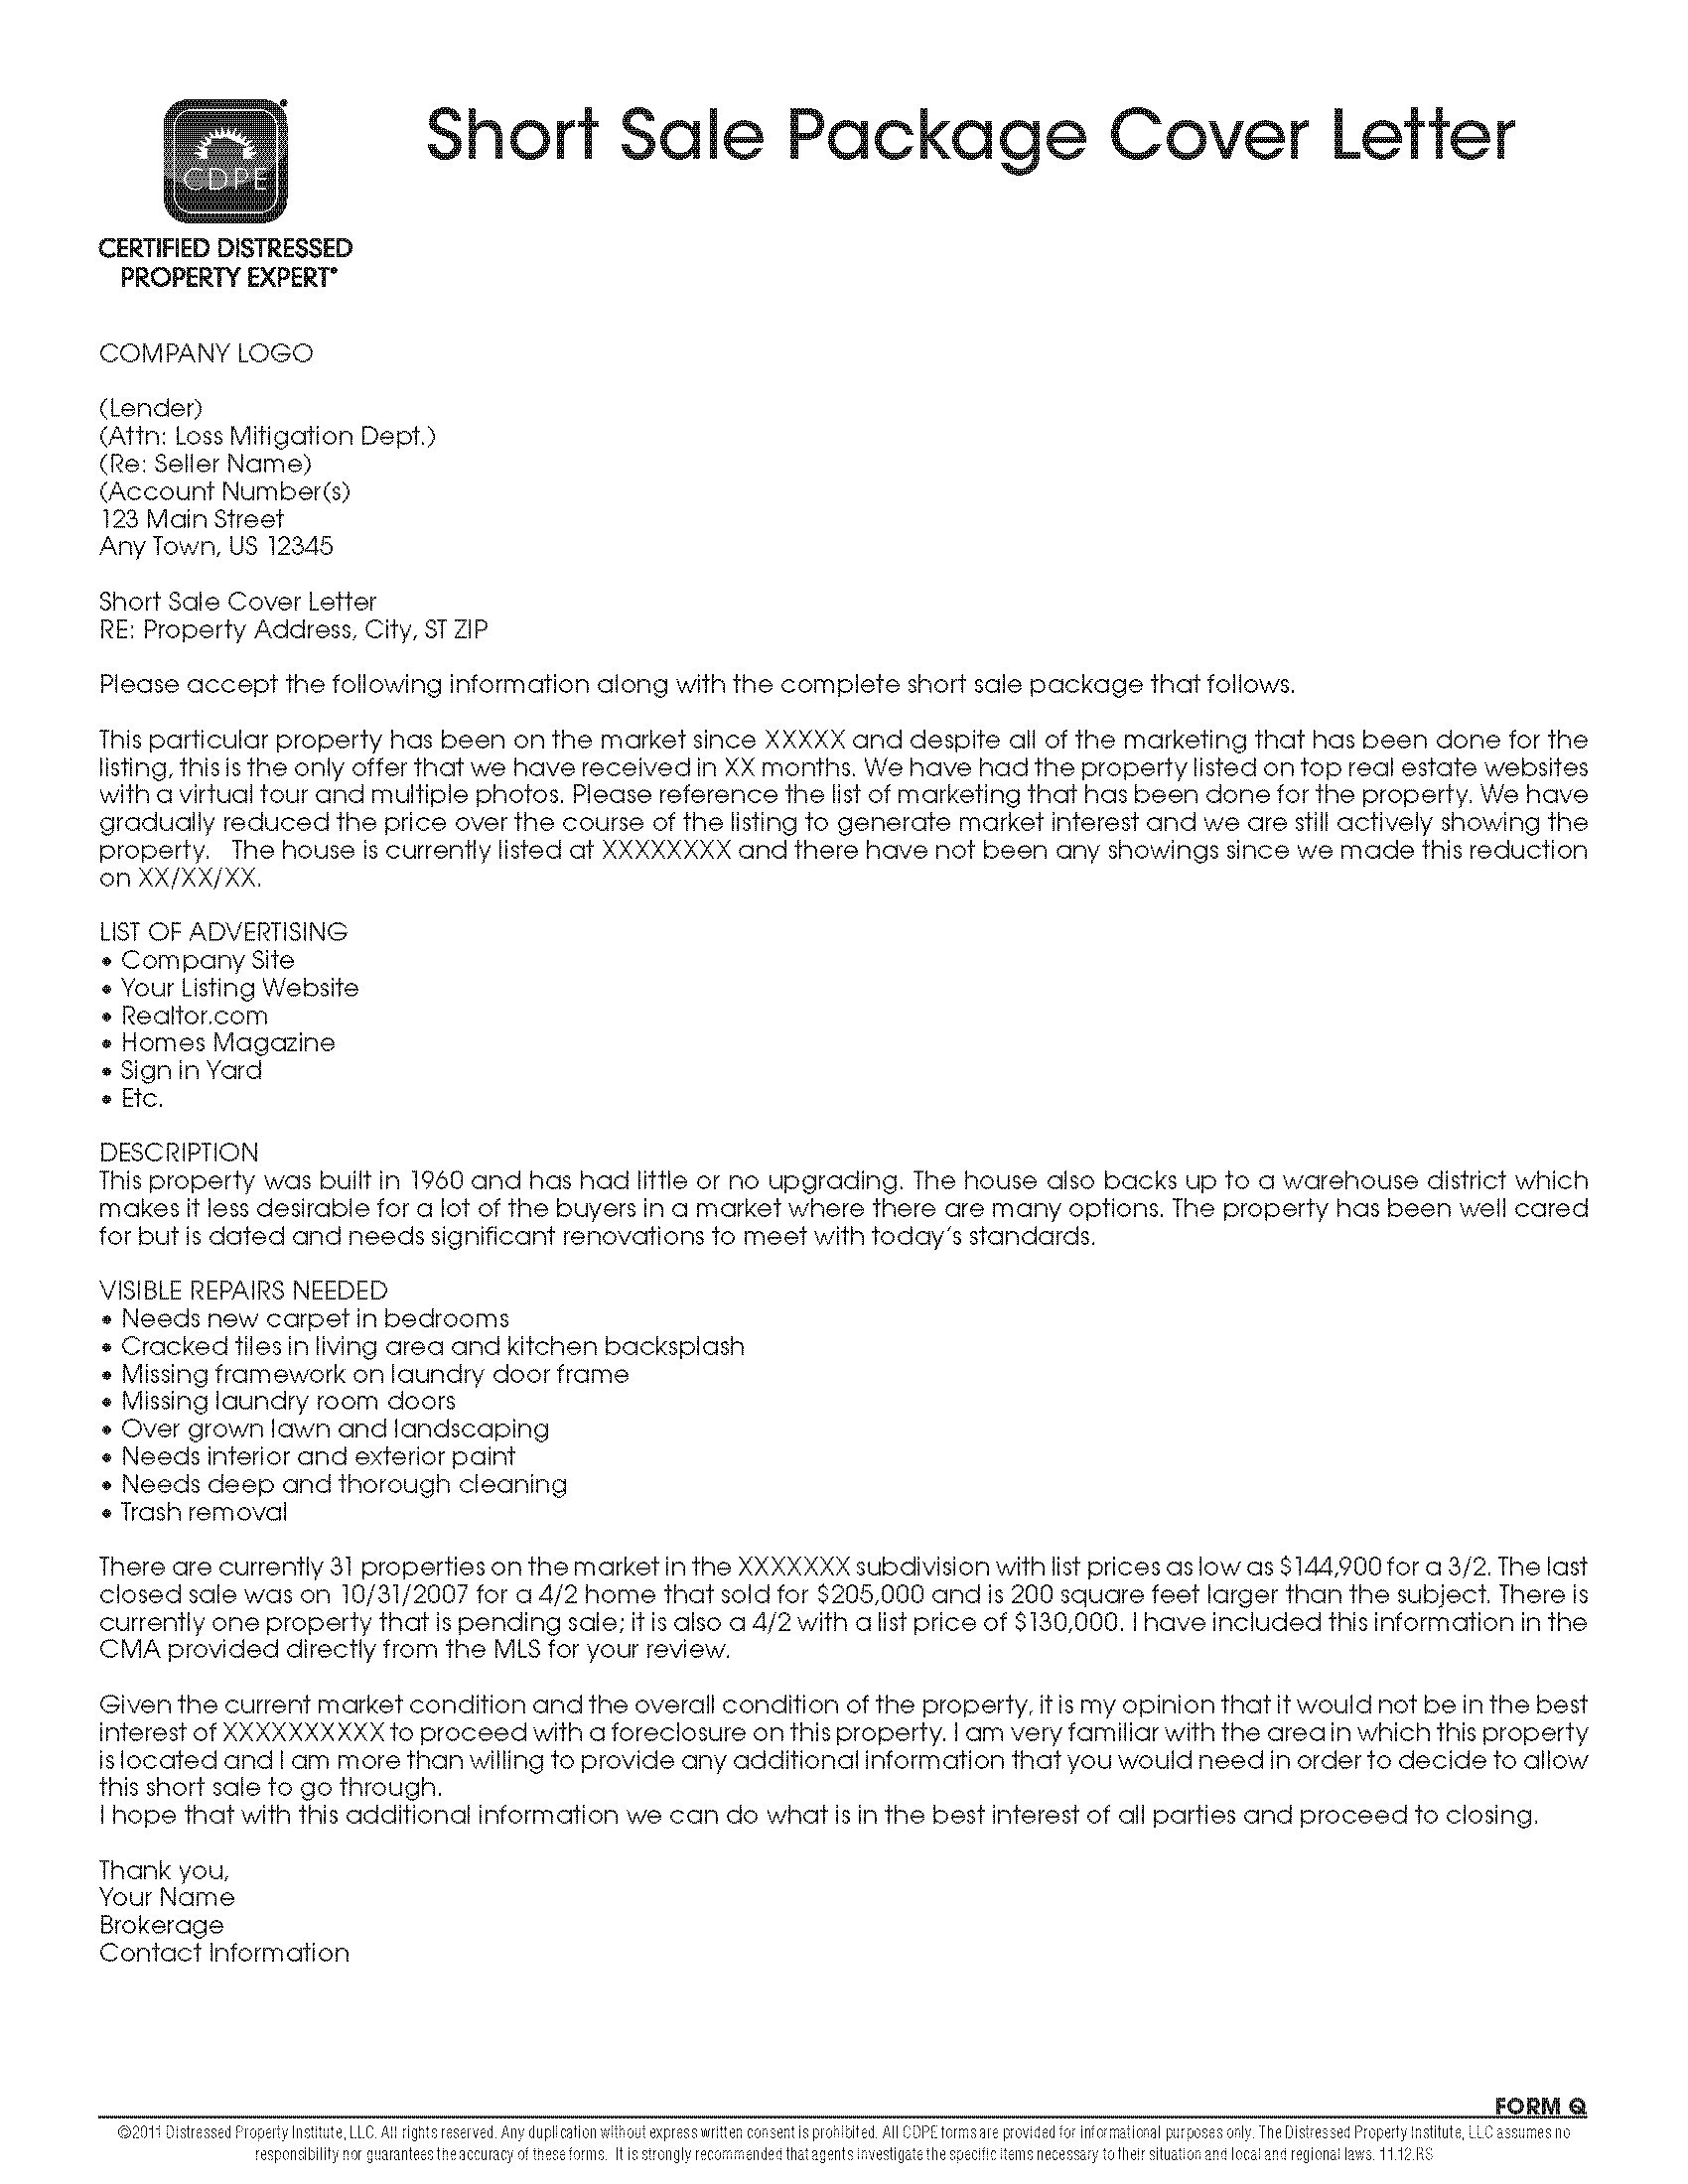 letter to seller from buyer template unique corporate express templates